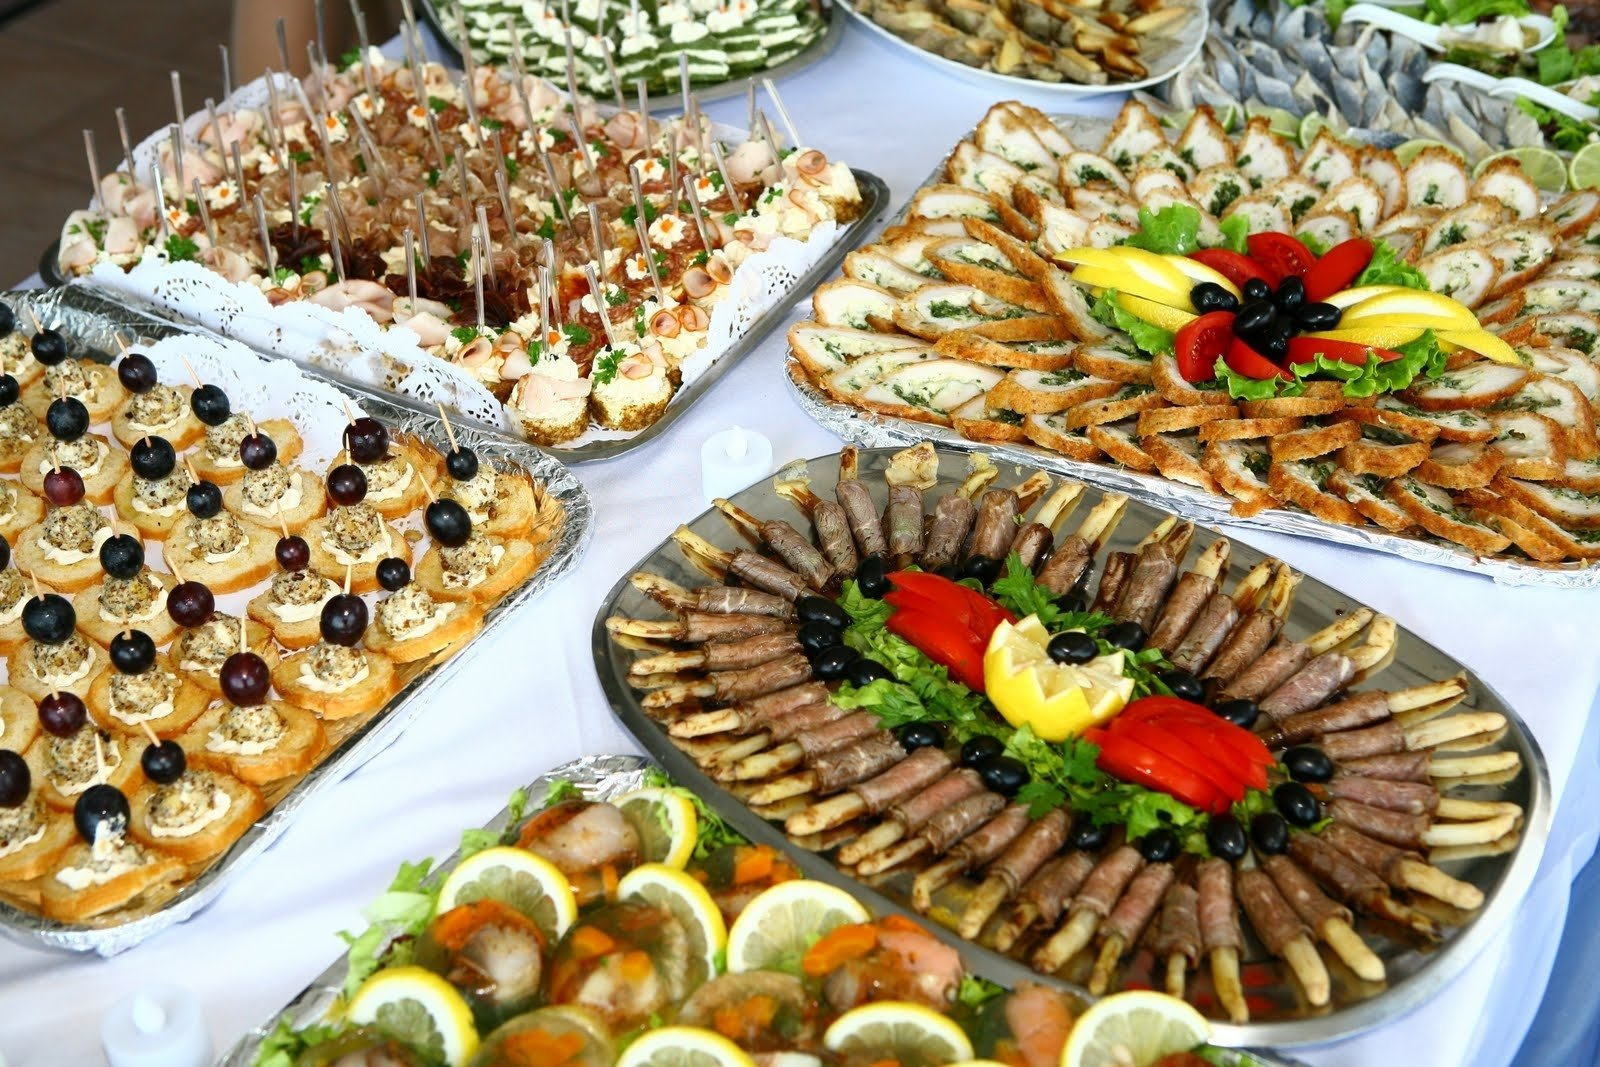 10 Famous Finger Food Ideas For Party finger foods for christmas party christmas stuff diy decorations 4 2021